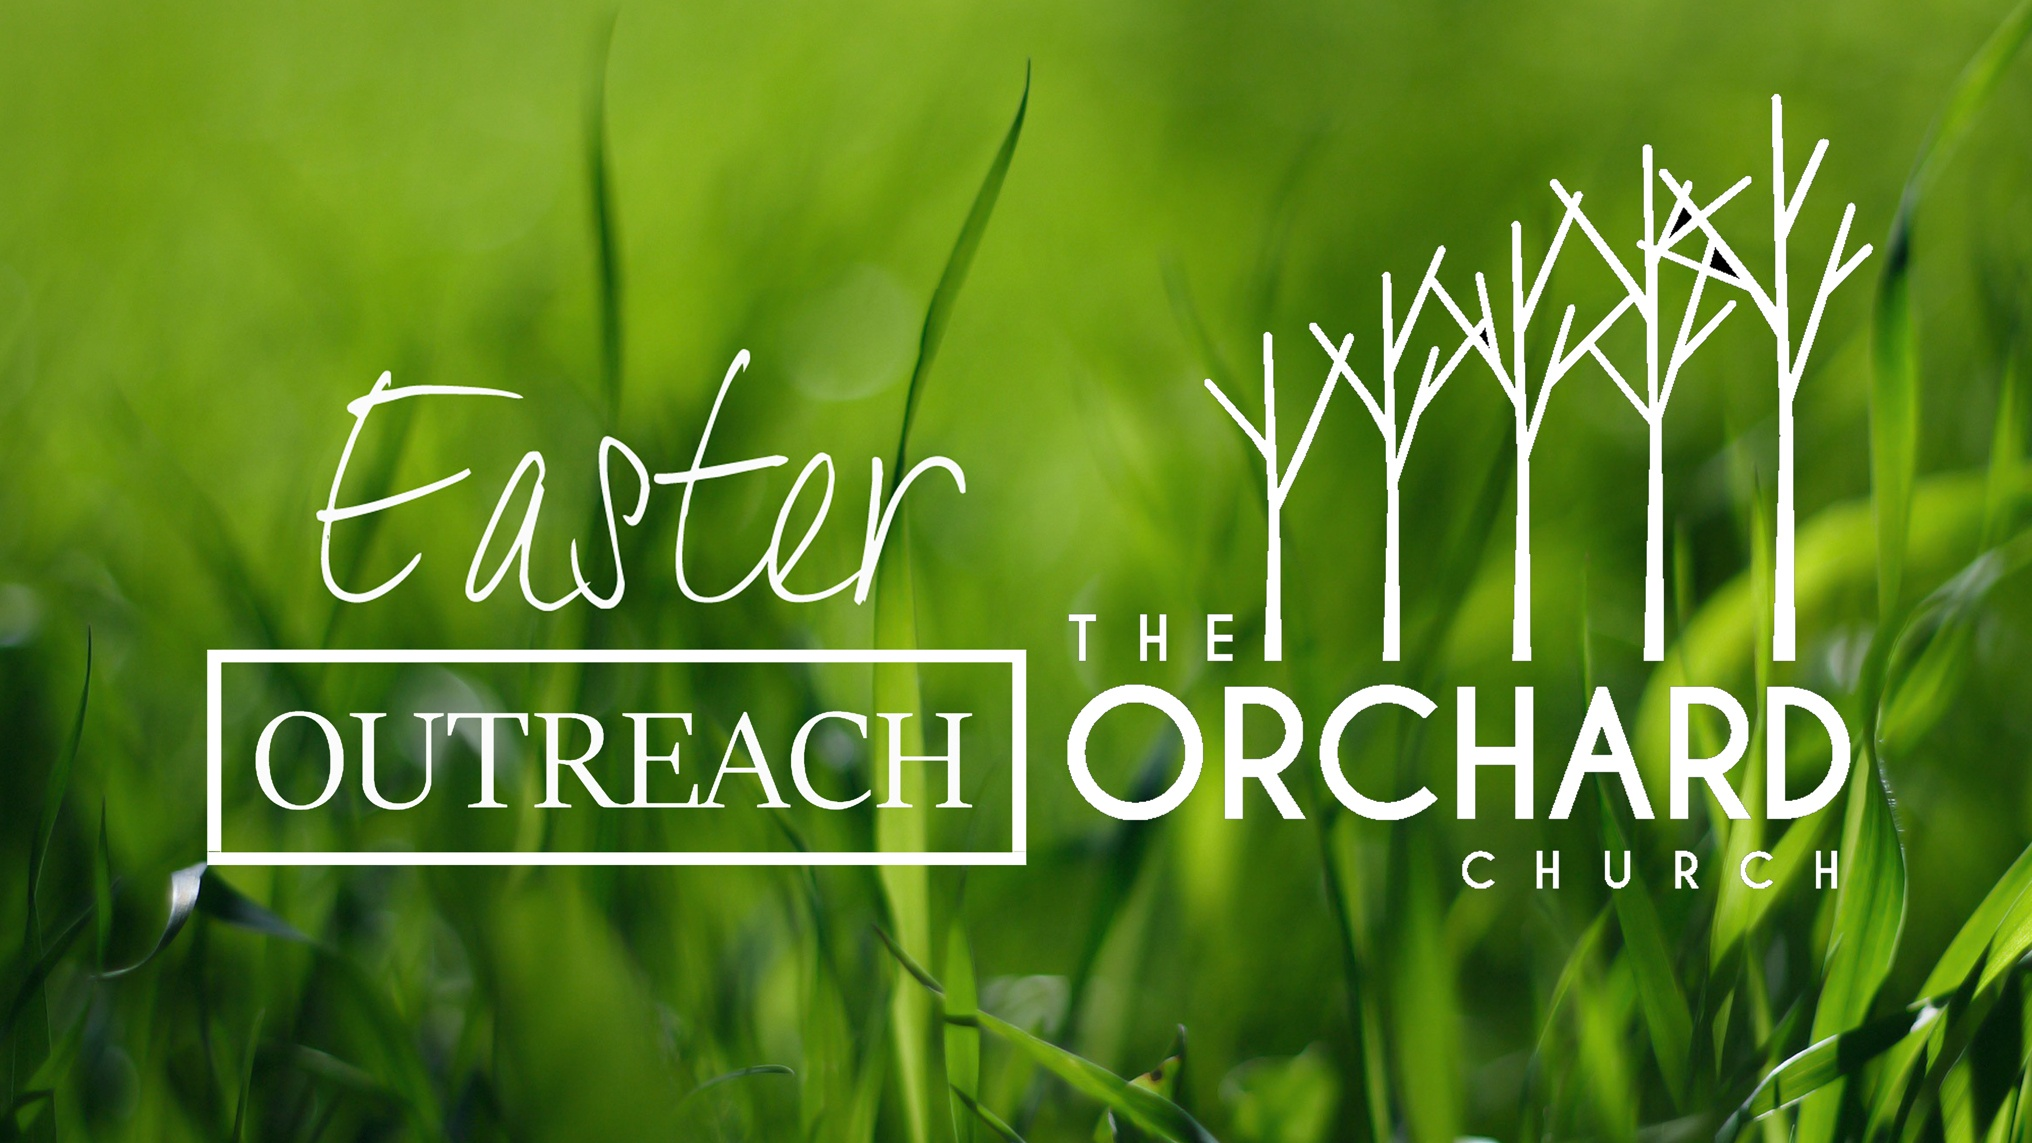 Easter_outreach_Theorchard_webandkiosk